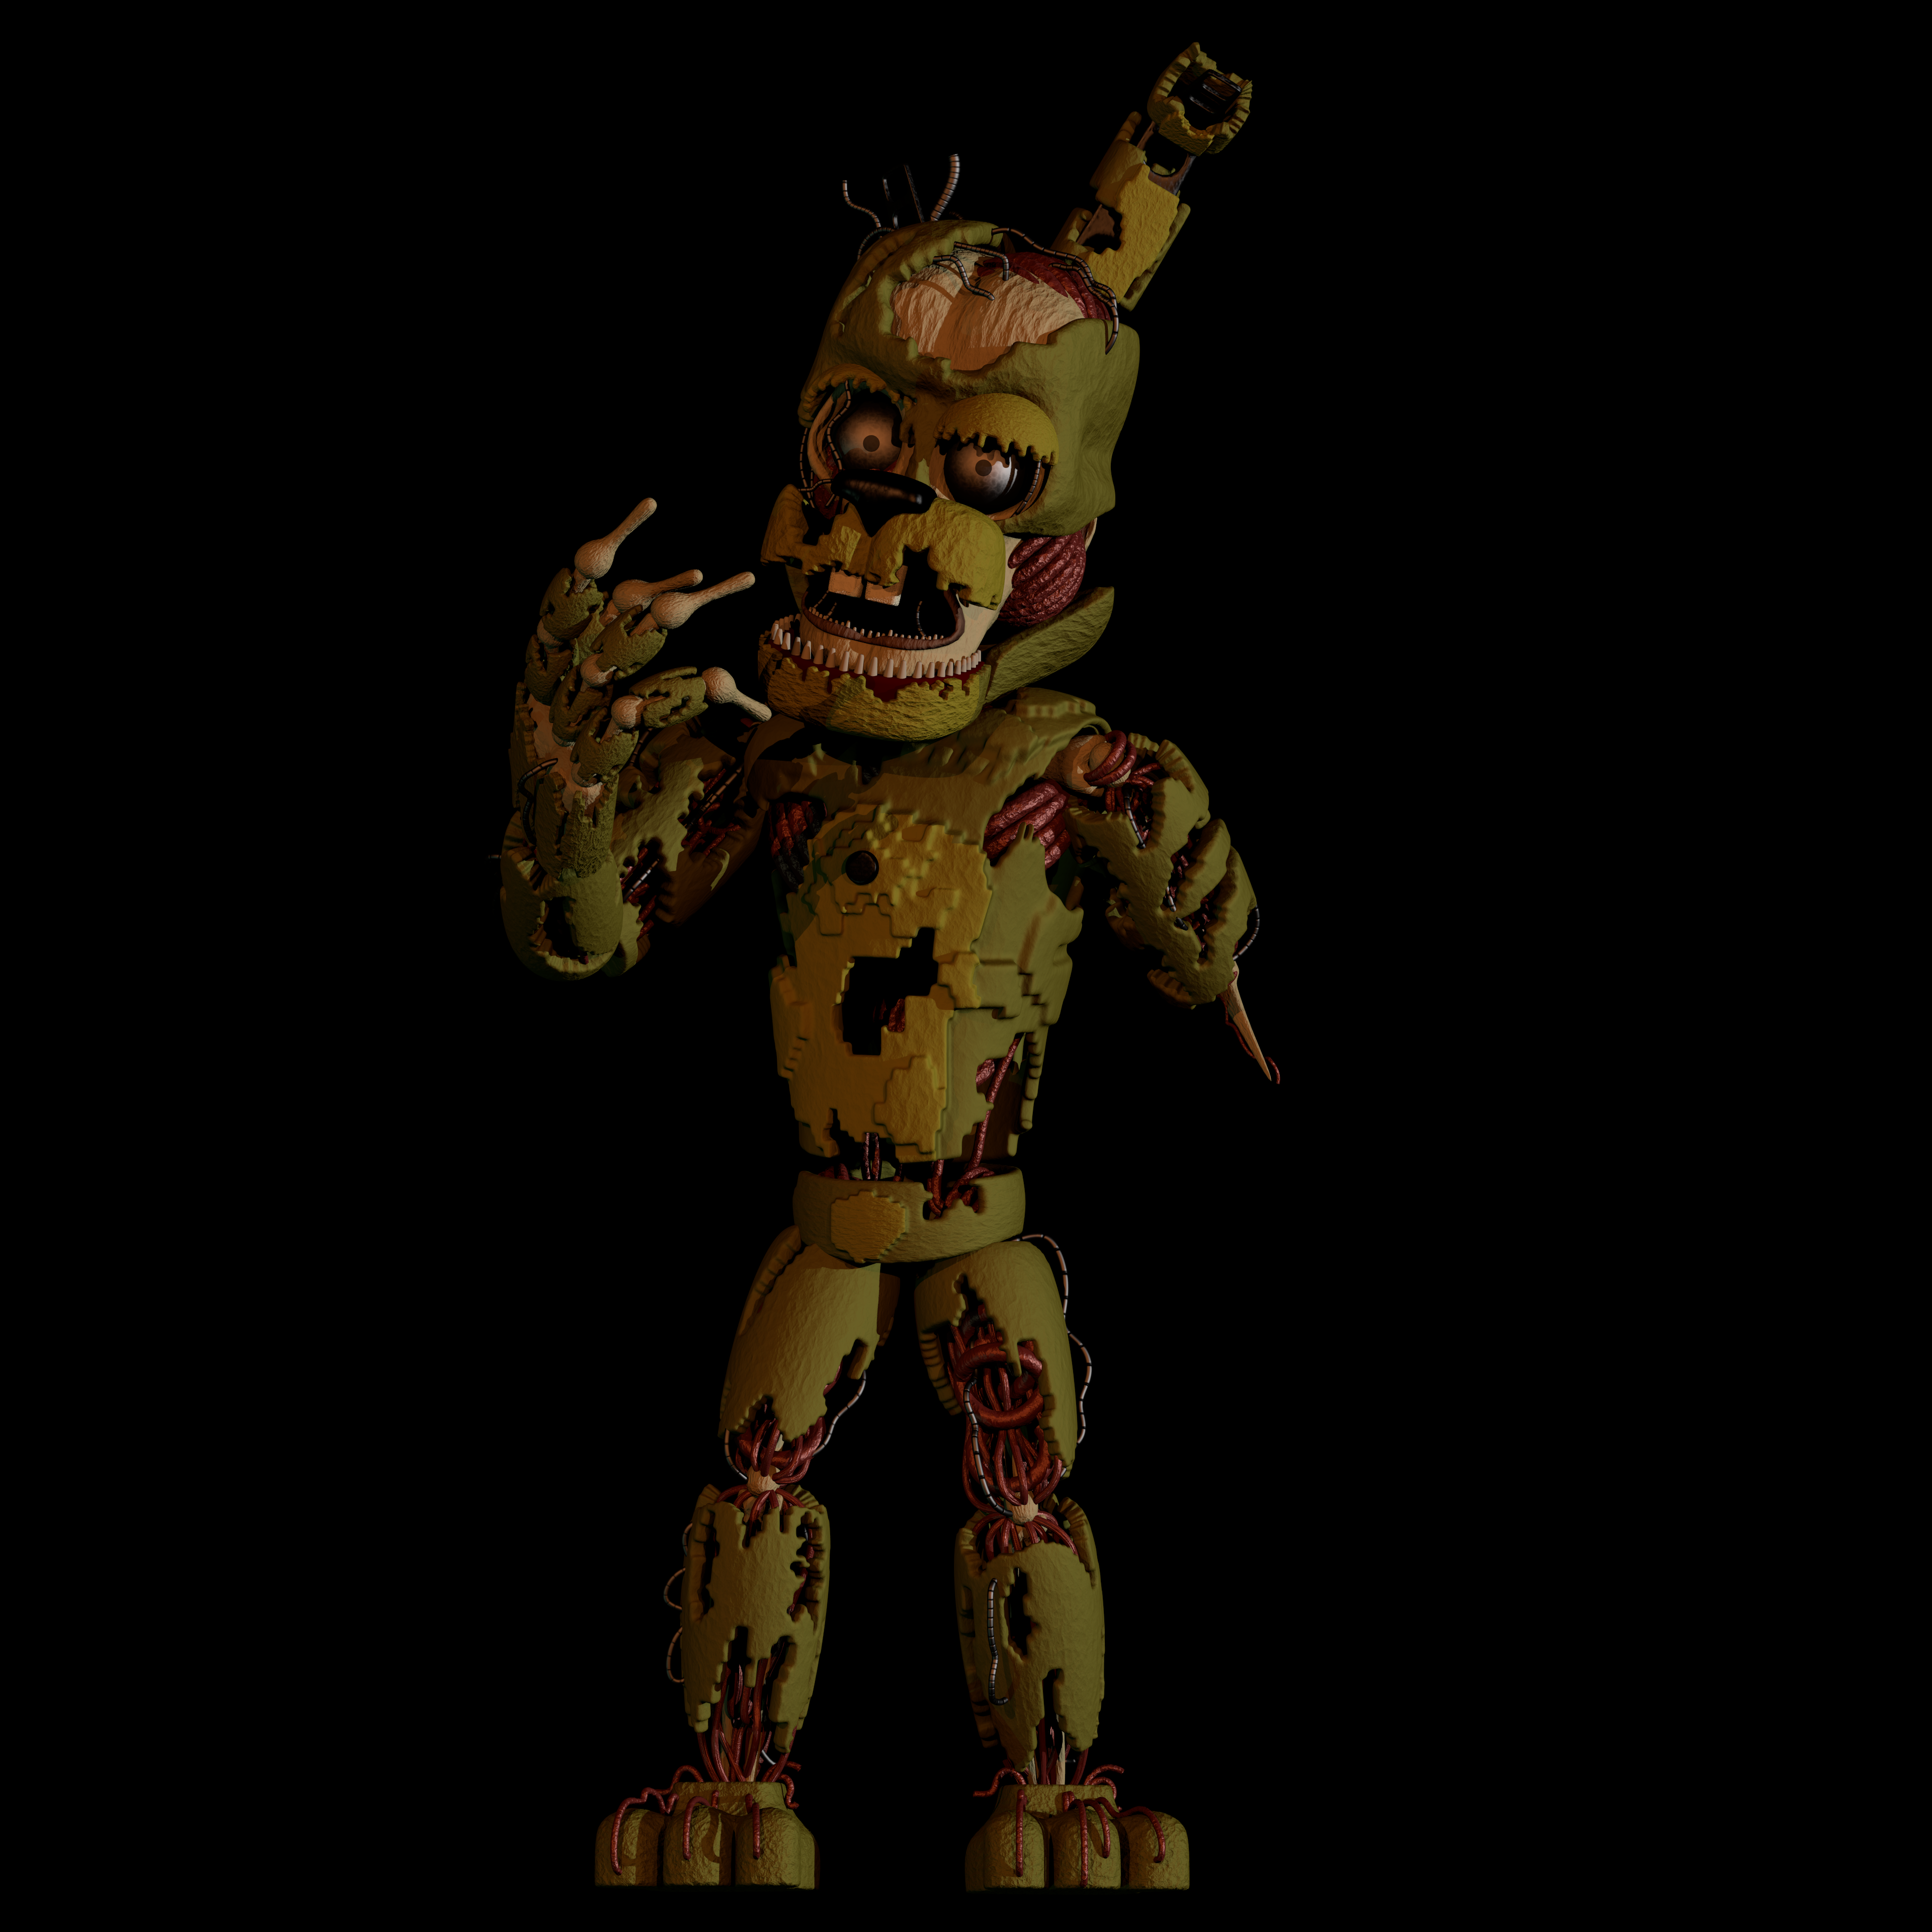 William Afton 'Springtrap' Model by EndyArts on DeviantArt